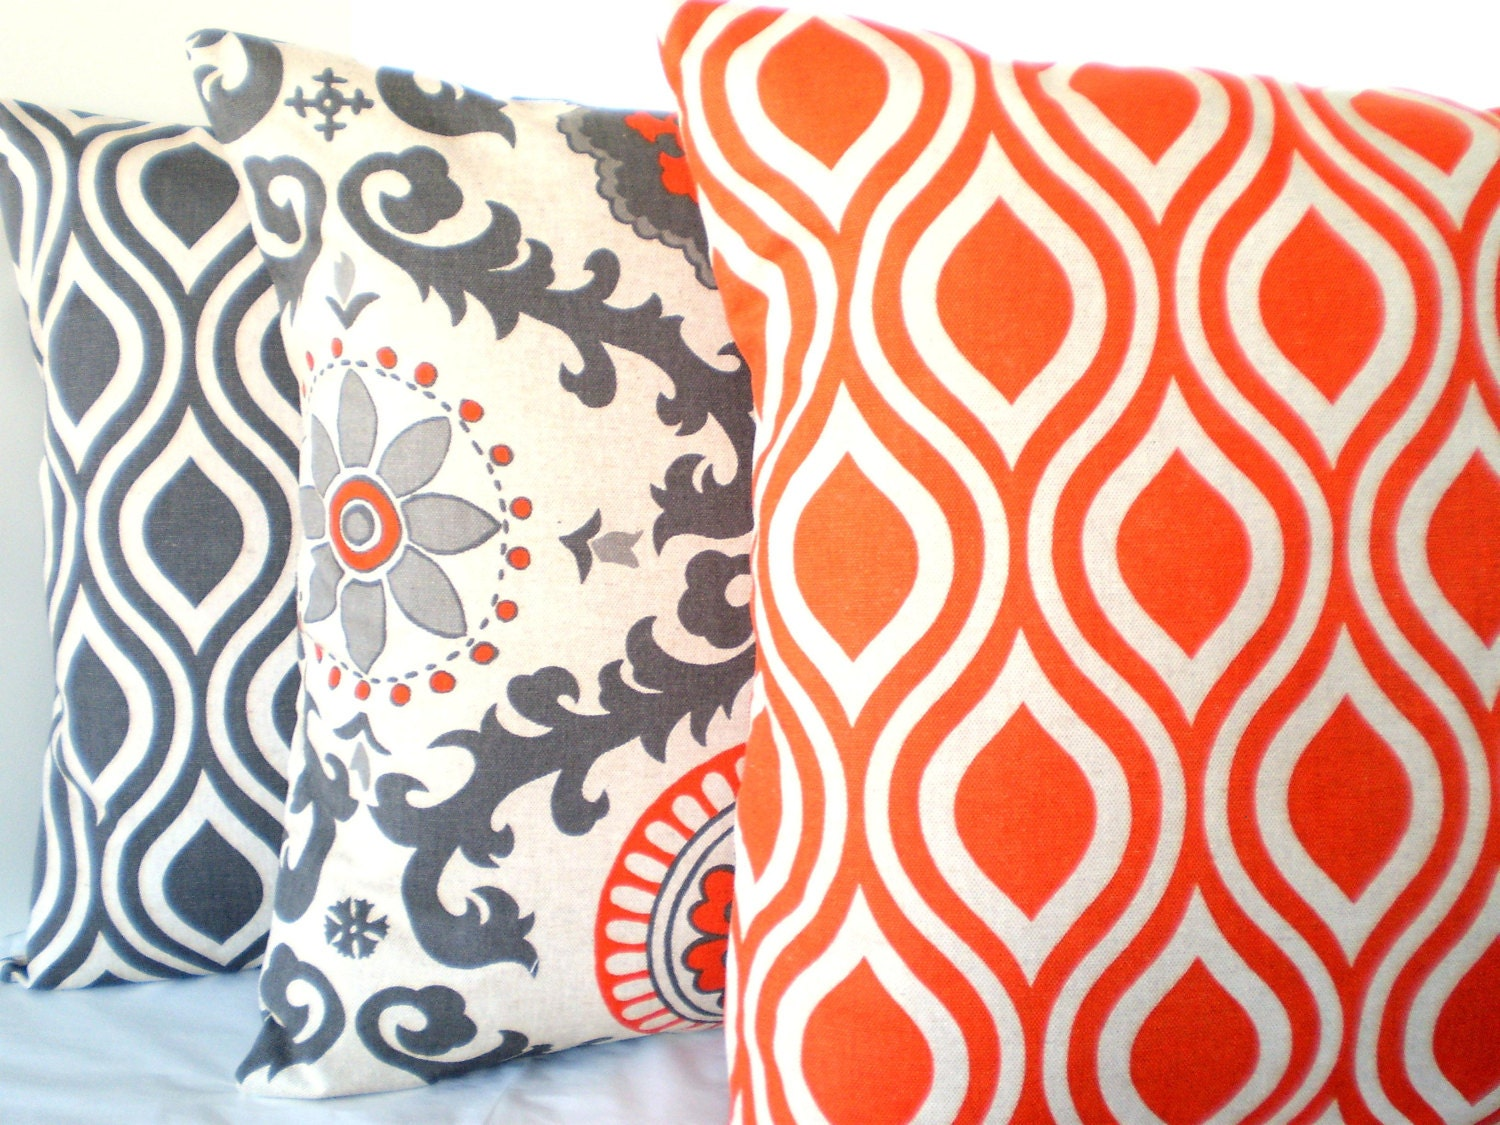 Decorative Throw Pillows Cushion Covers Gray Orange Natural BOTH SIDES - Combo Set of Three 18 x 18